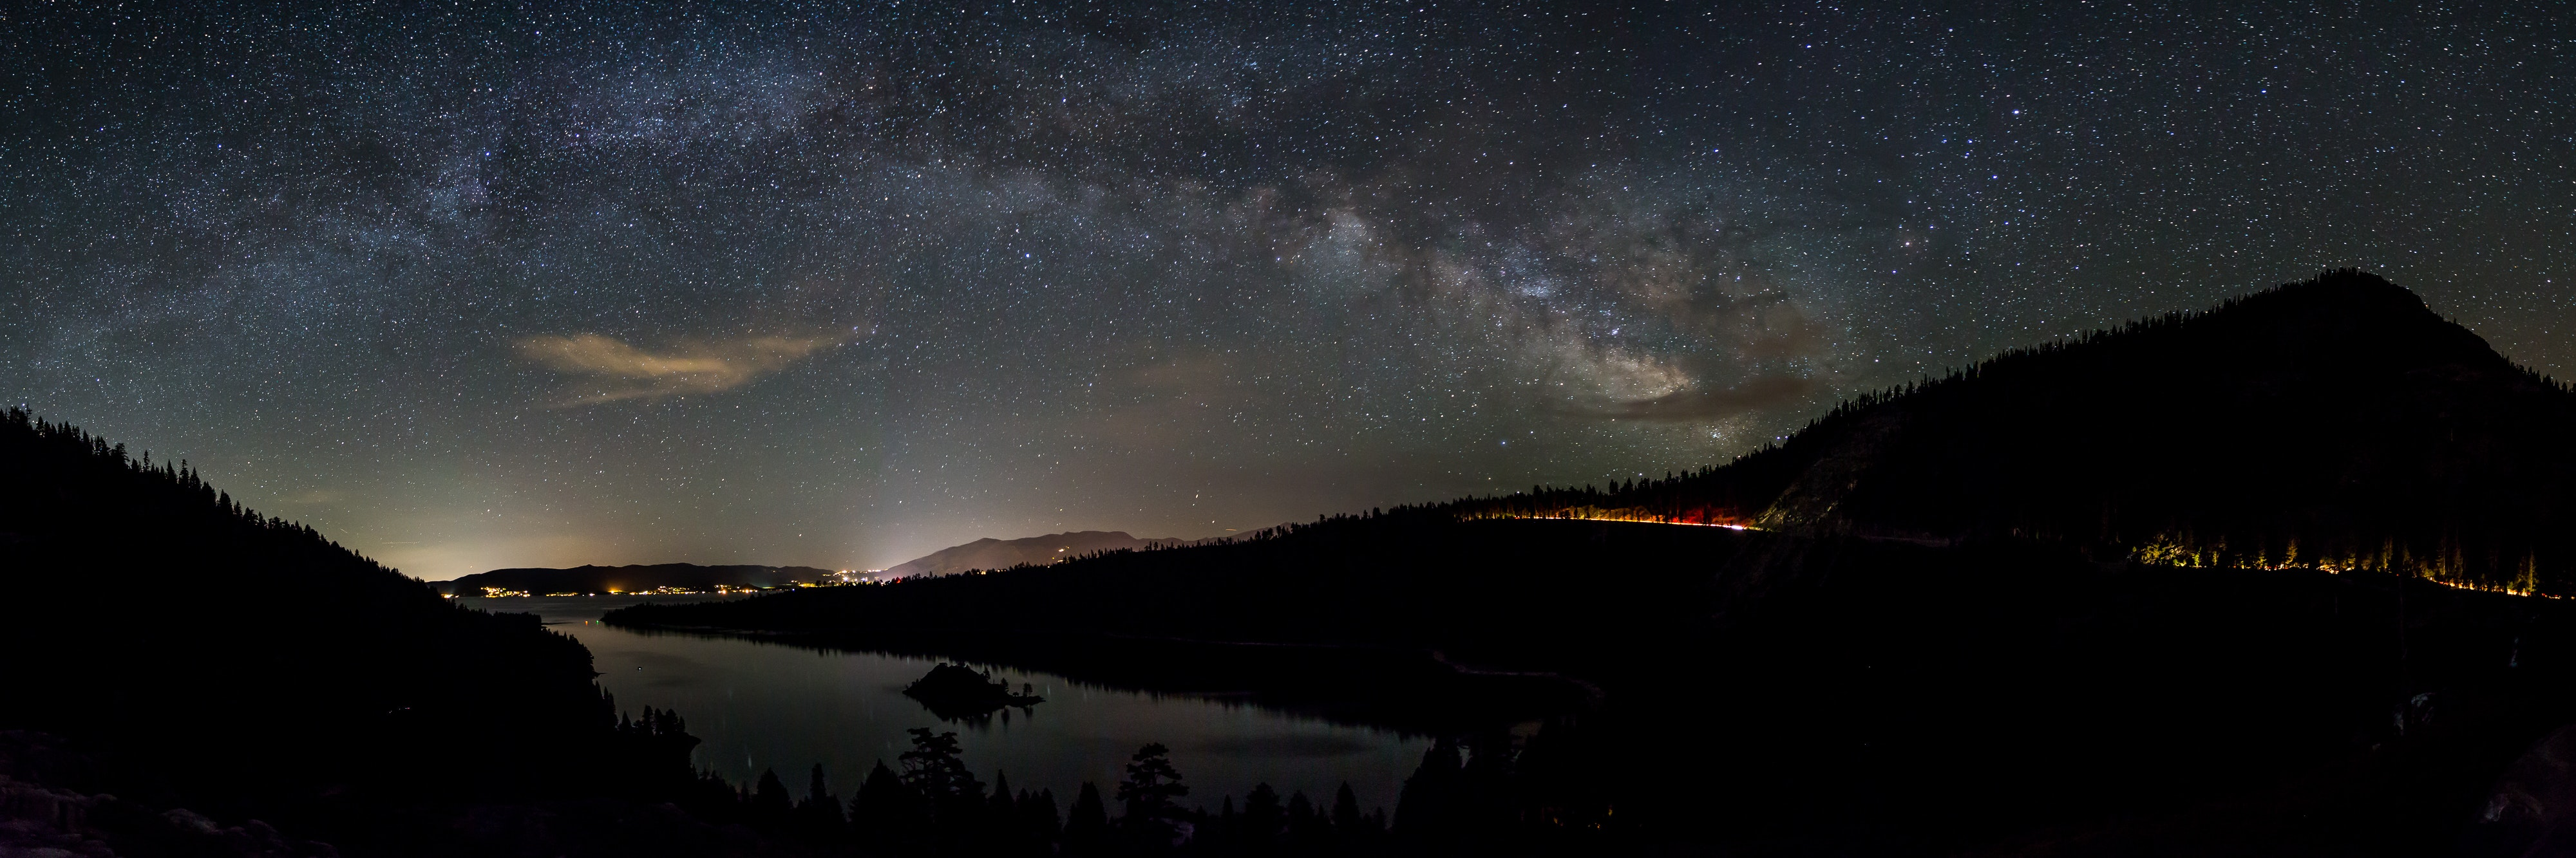 capture the milky way over emerald bay  lake tahoe